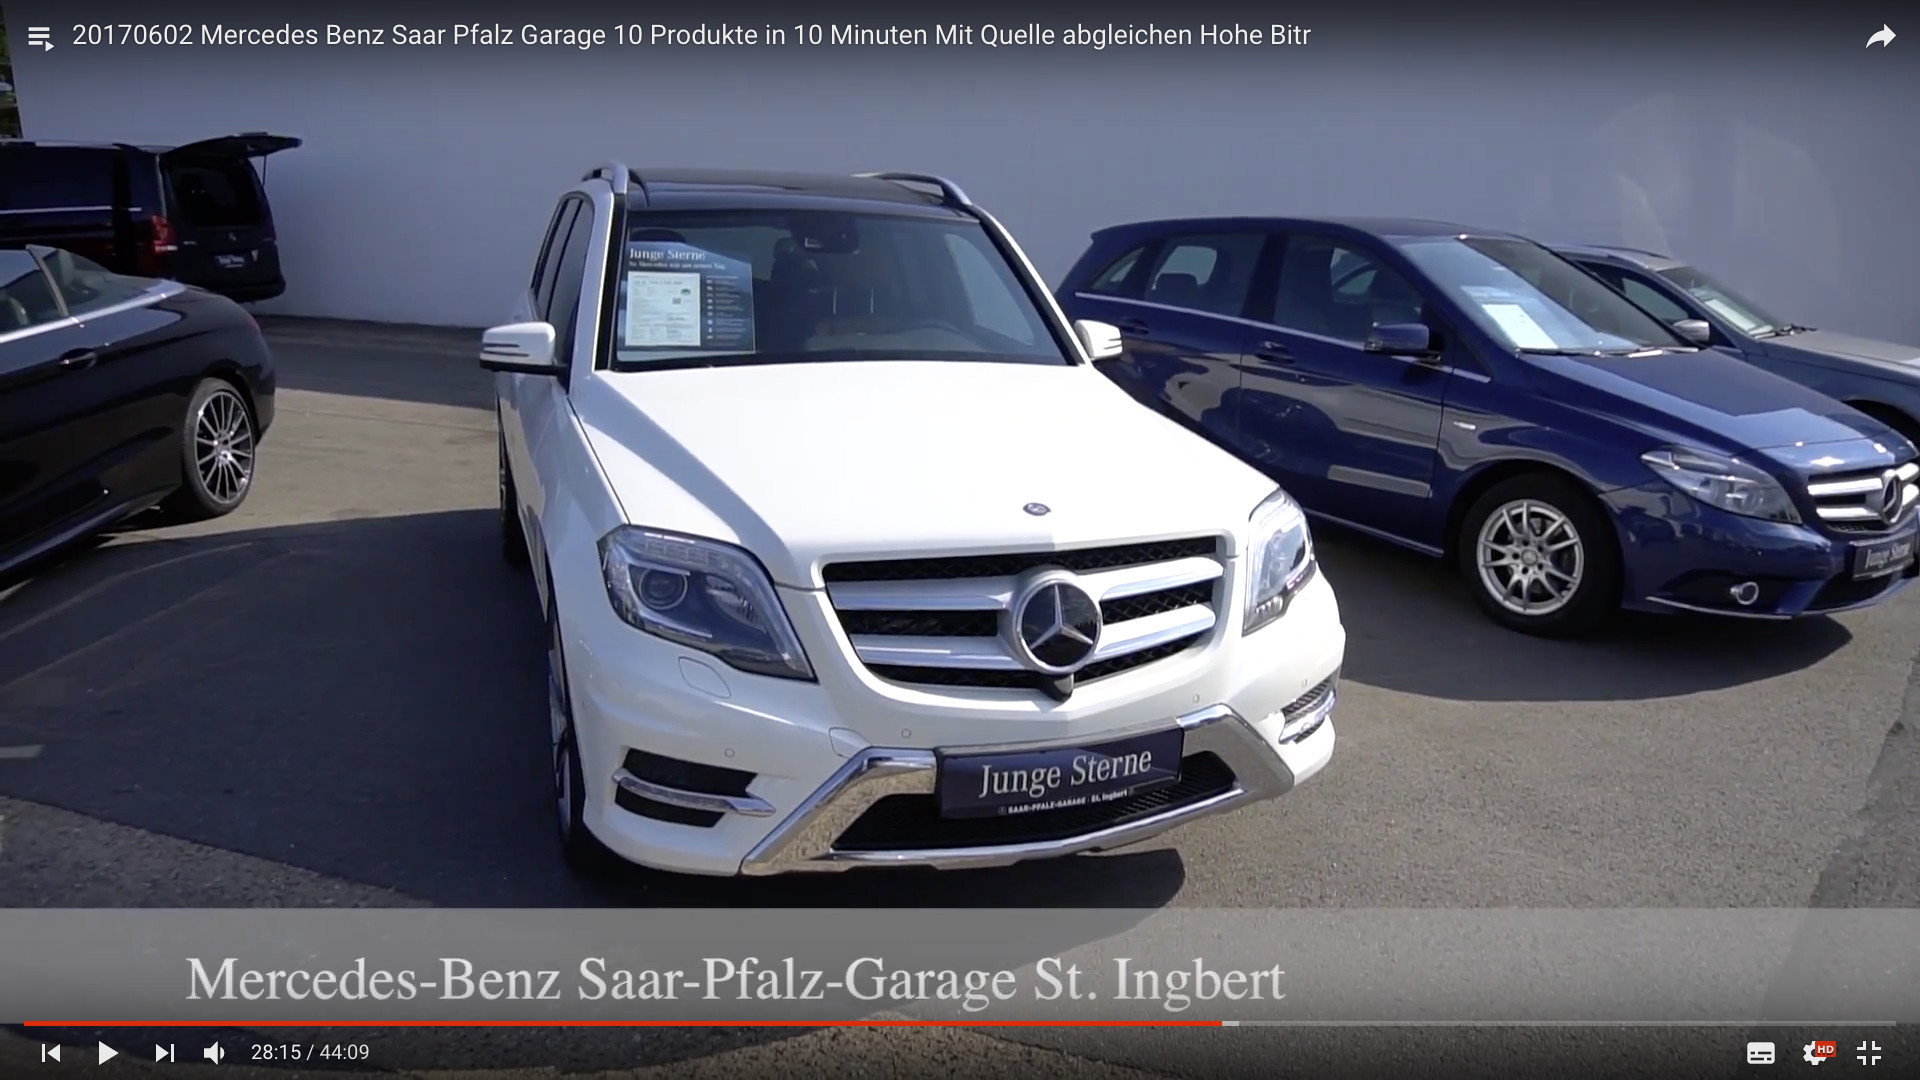 Saar Pfalz Garage  Mercedes Benz Saar Pfalz Garage 10 Produkte in 10